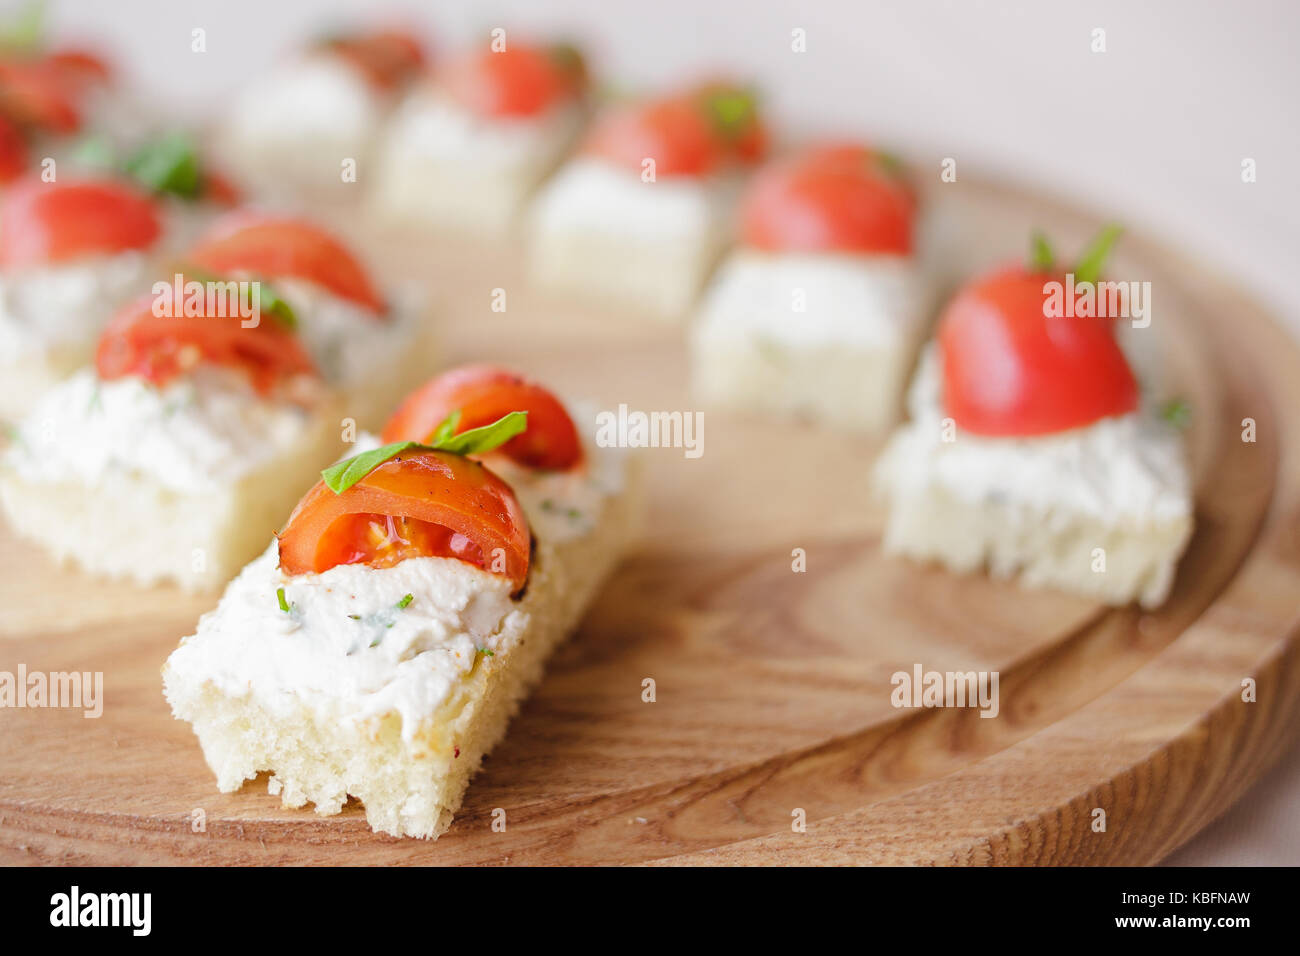 canape tray stock photos canape tray stock images alamy. Black Bedroom Furniture Sets. Home Design Ideas